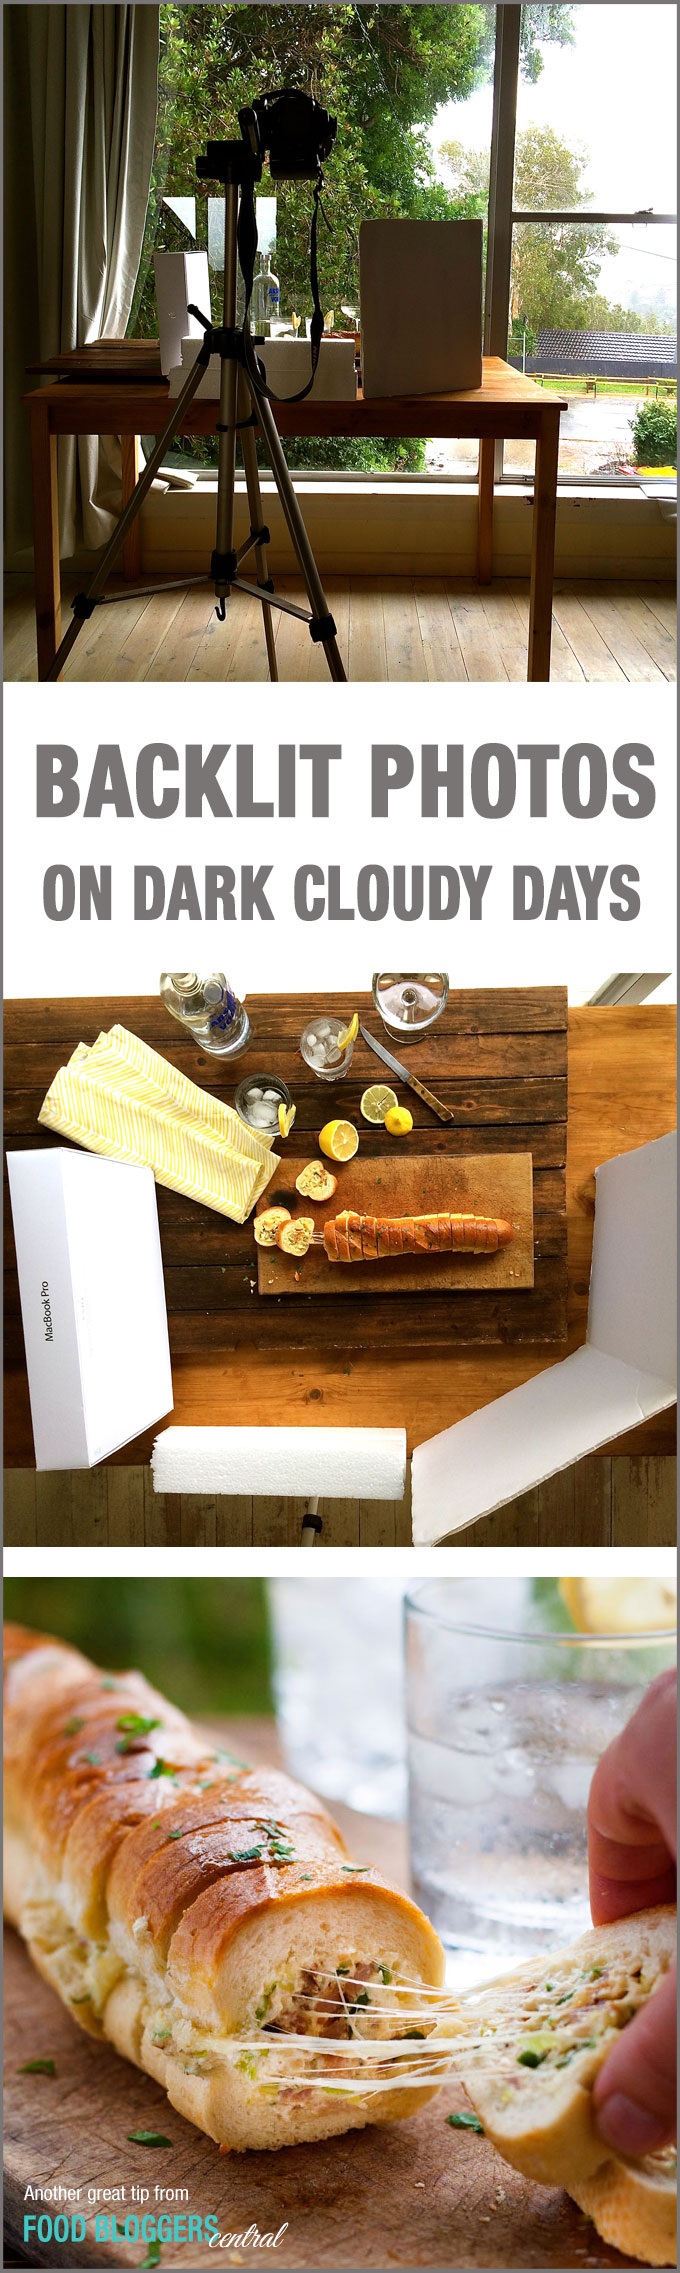 How to take food photos in low lighting / dark cloudy days